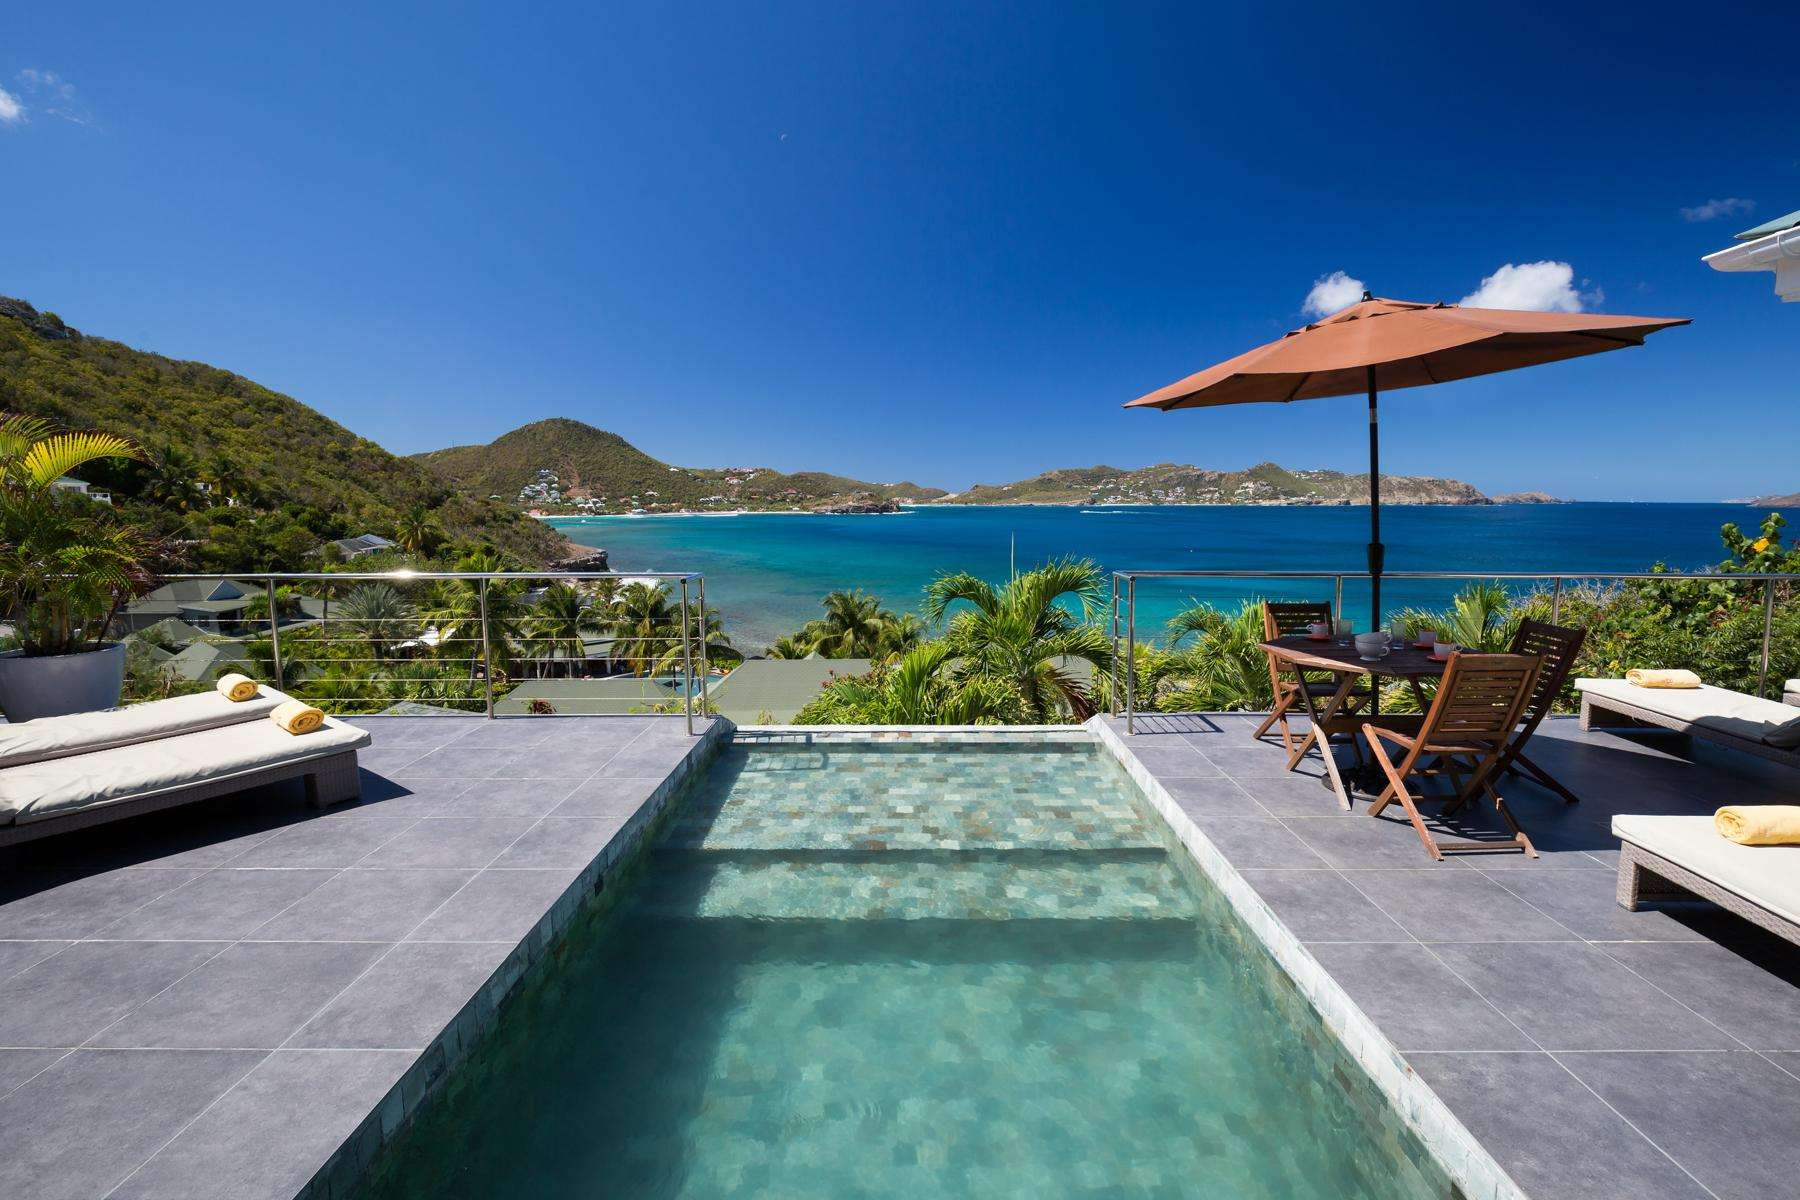 Luxury villa rentals caribbean - St barthelemy - Pointe milou - No location 4 - Mirande - Image 1/29